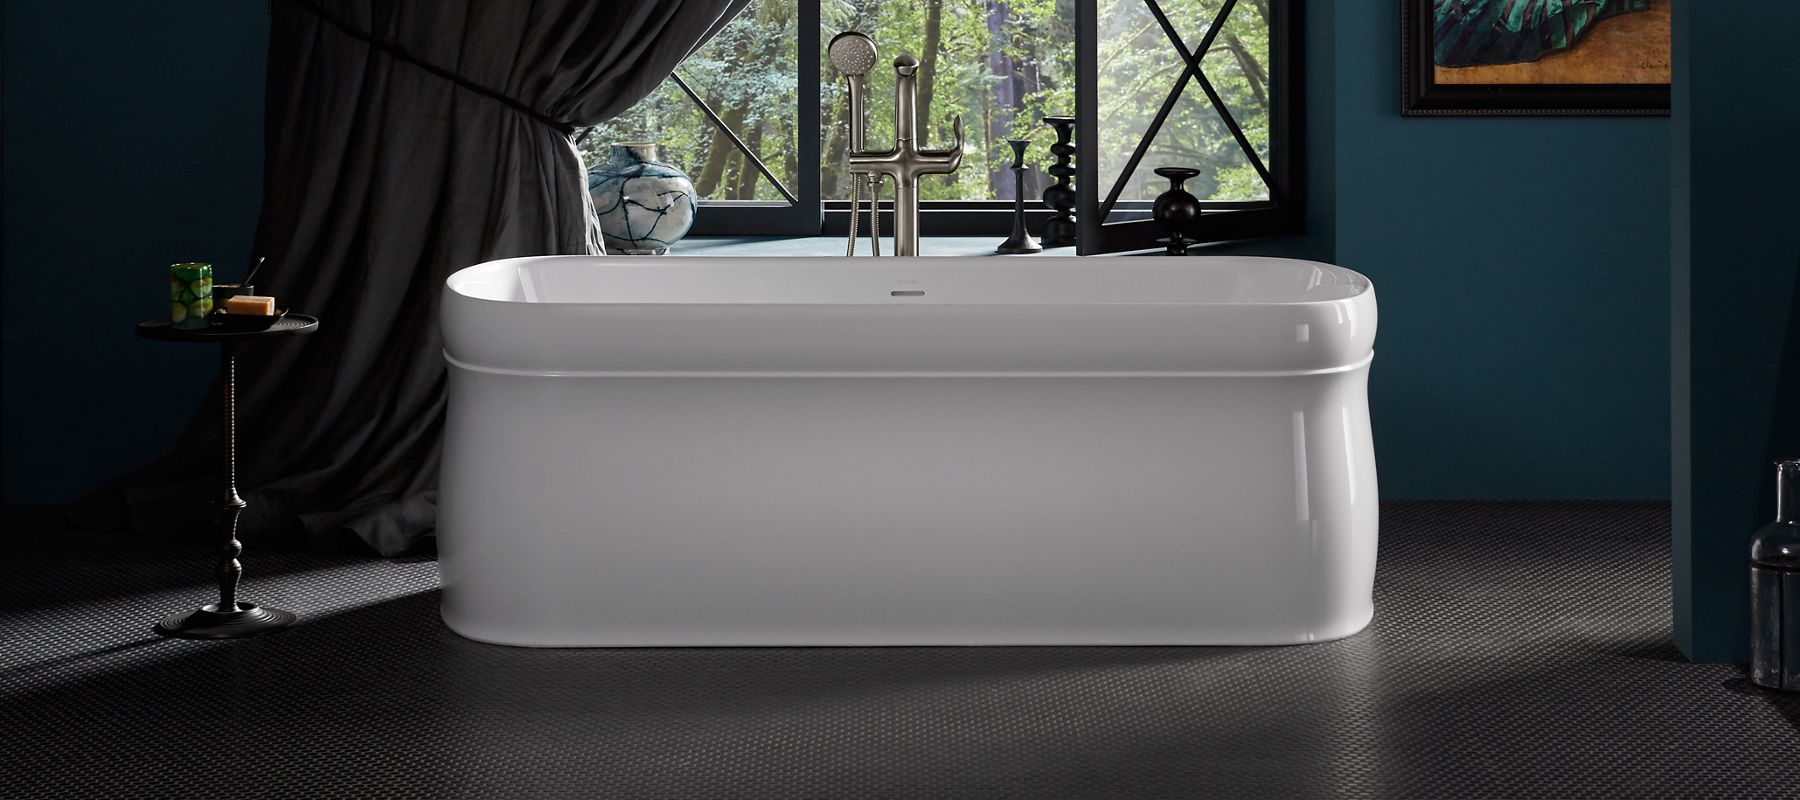 decors view lowe tina ove larger s tubs freestanding whirlpool canada bathtubs bathtub